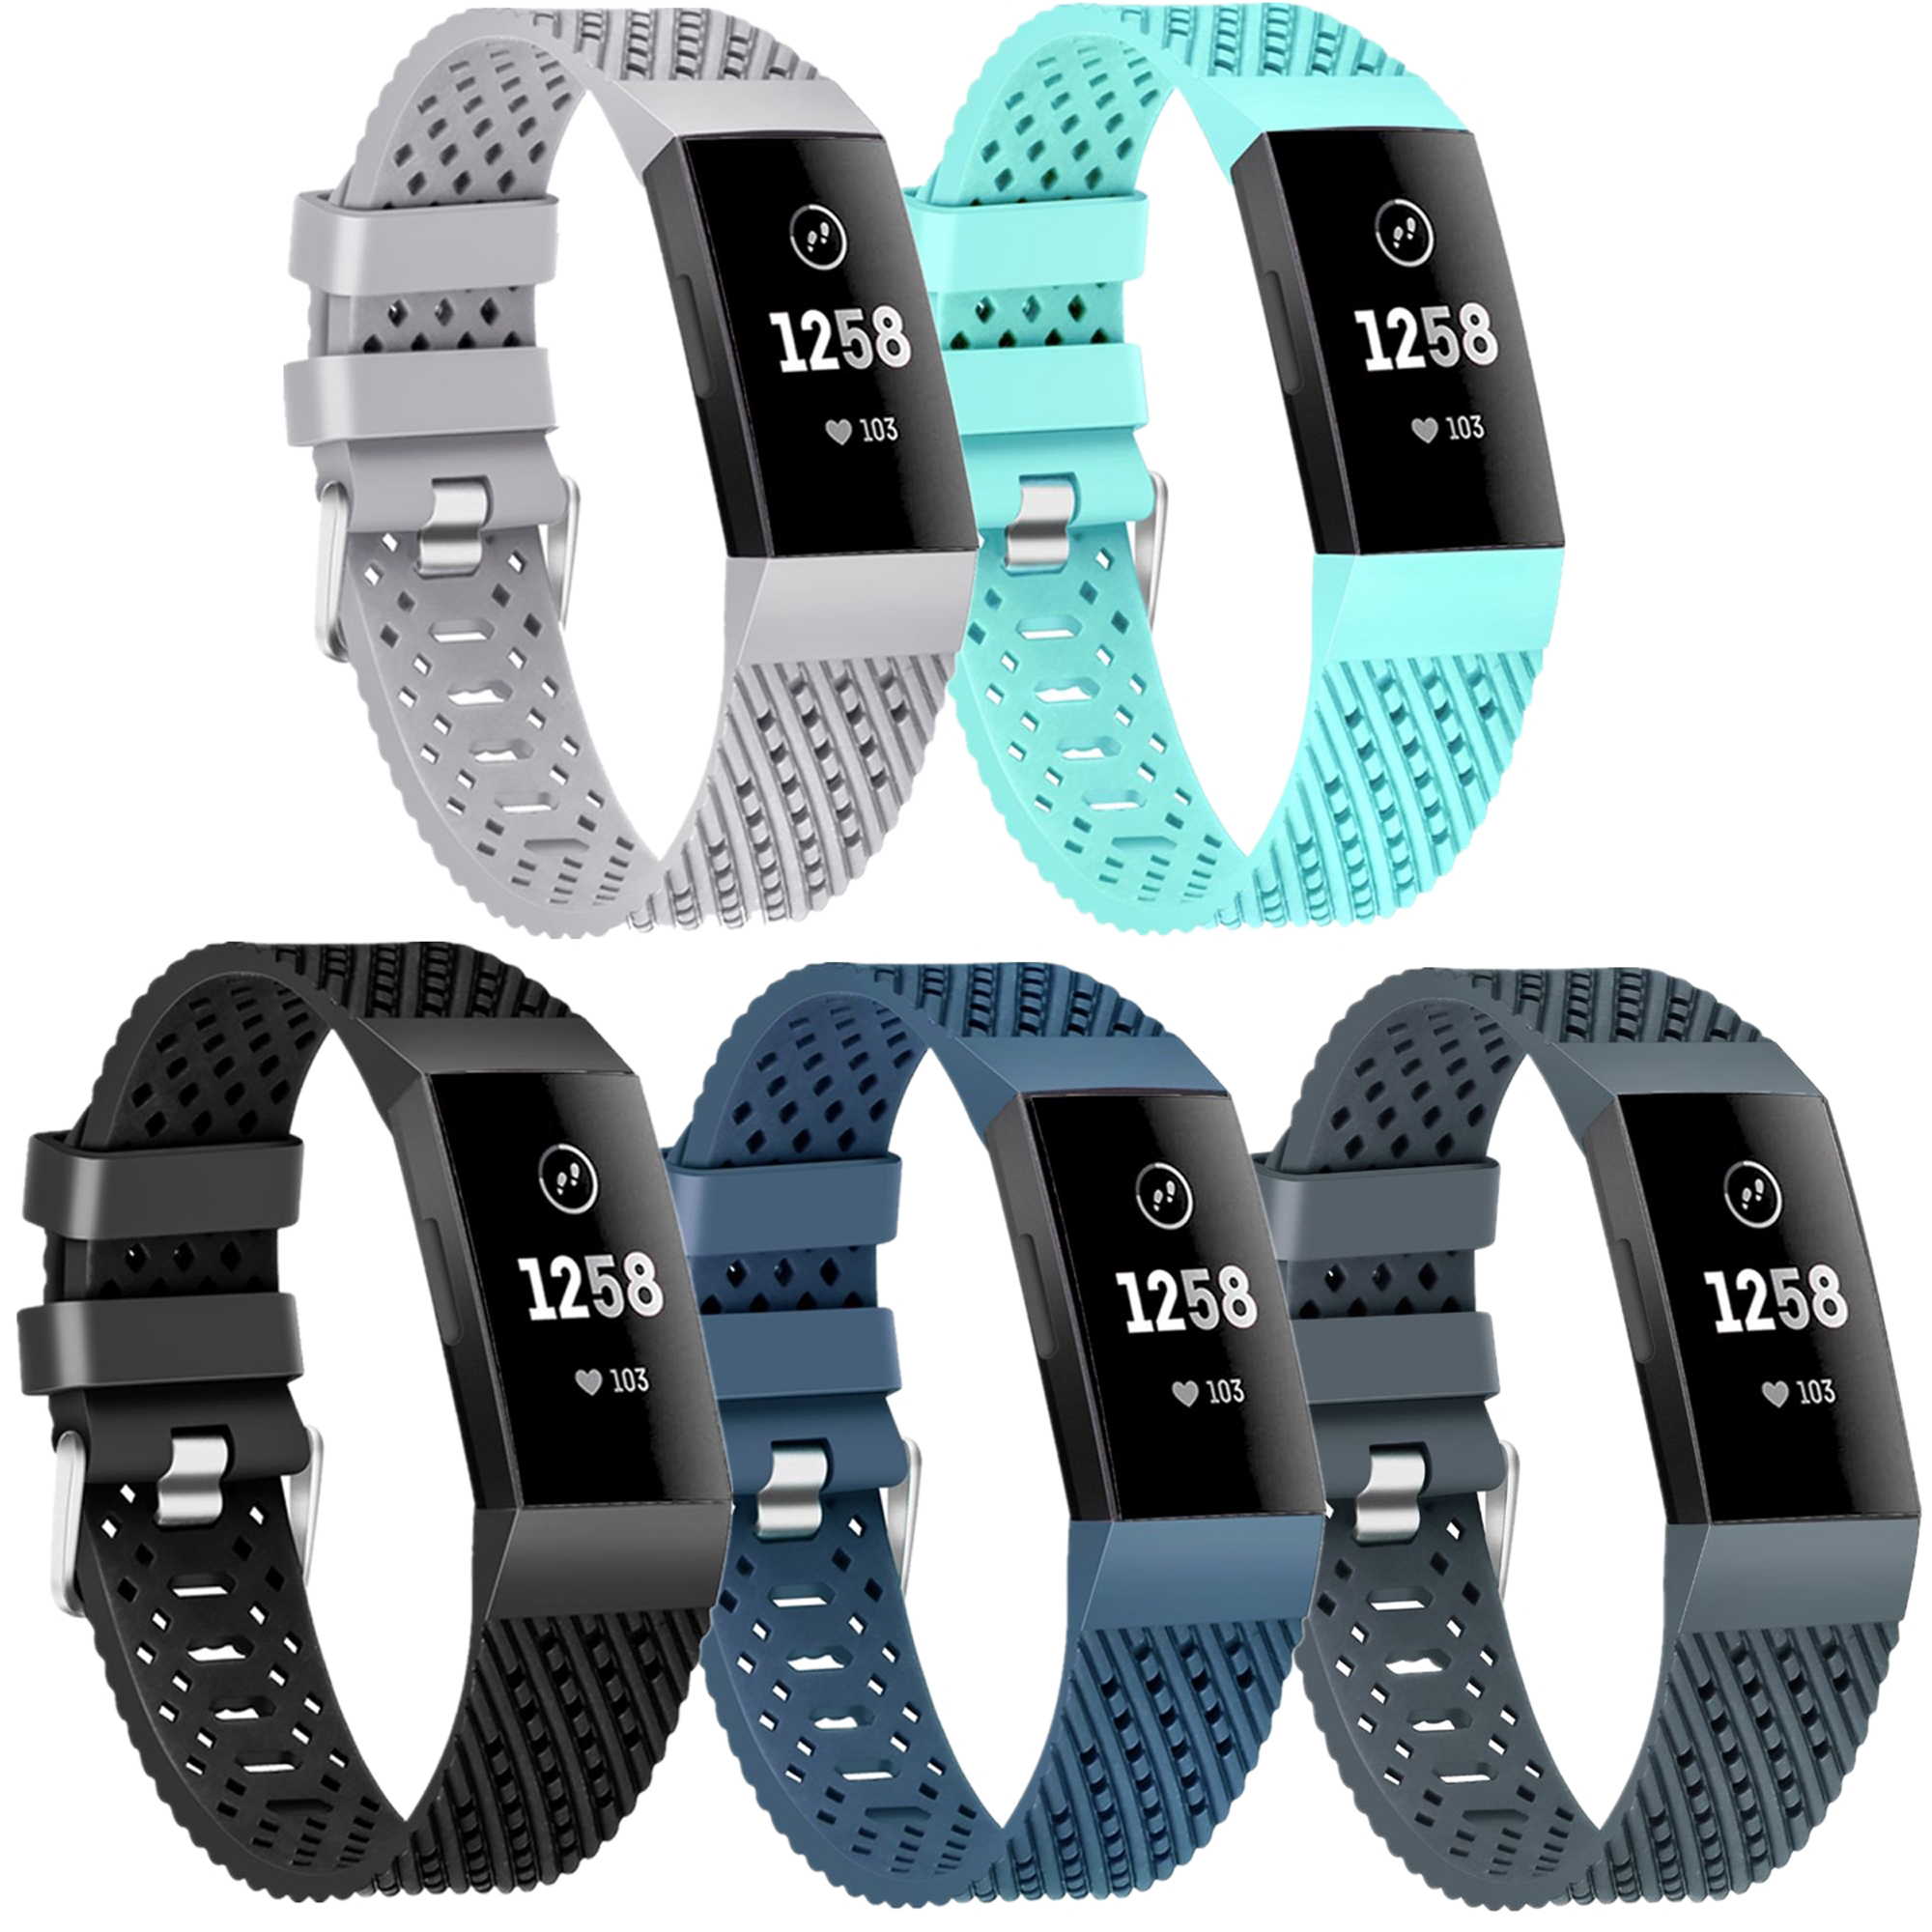 Moretek 5PCS Charge 3 Replacement Wrist Band Multi-Color Women Men Bands Accessories for Fitbit Charge 3 Large